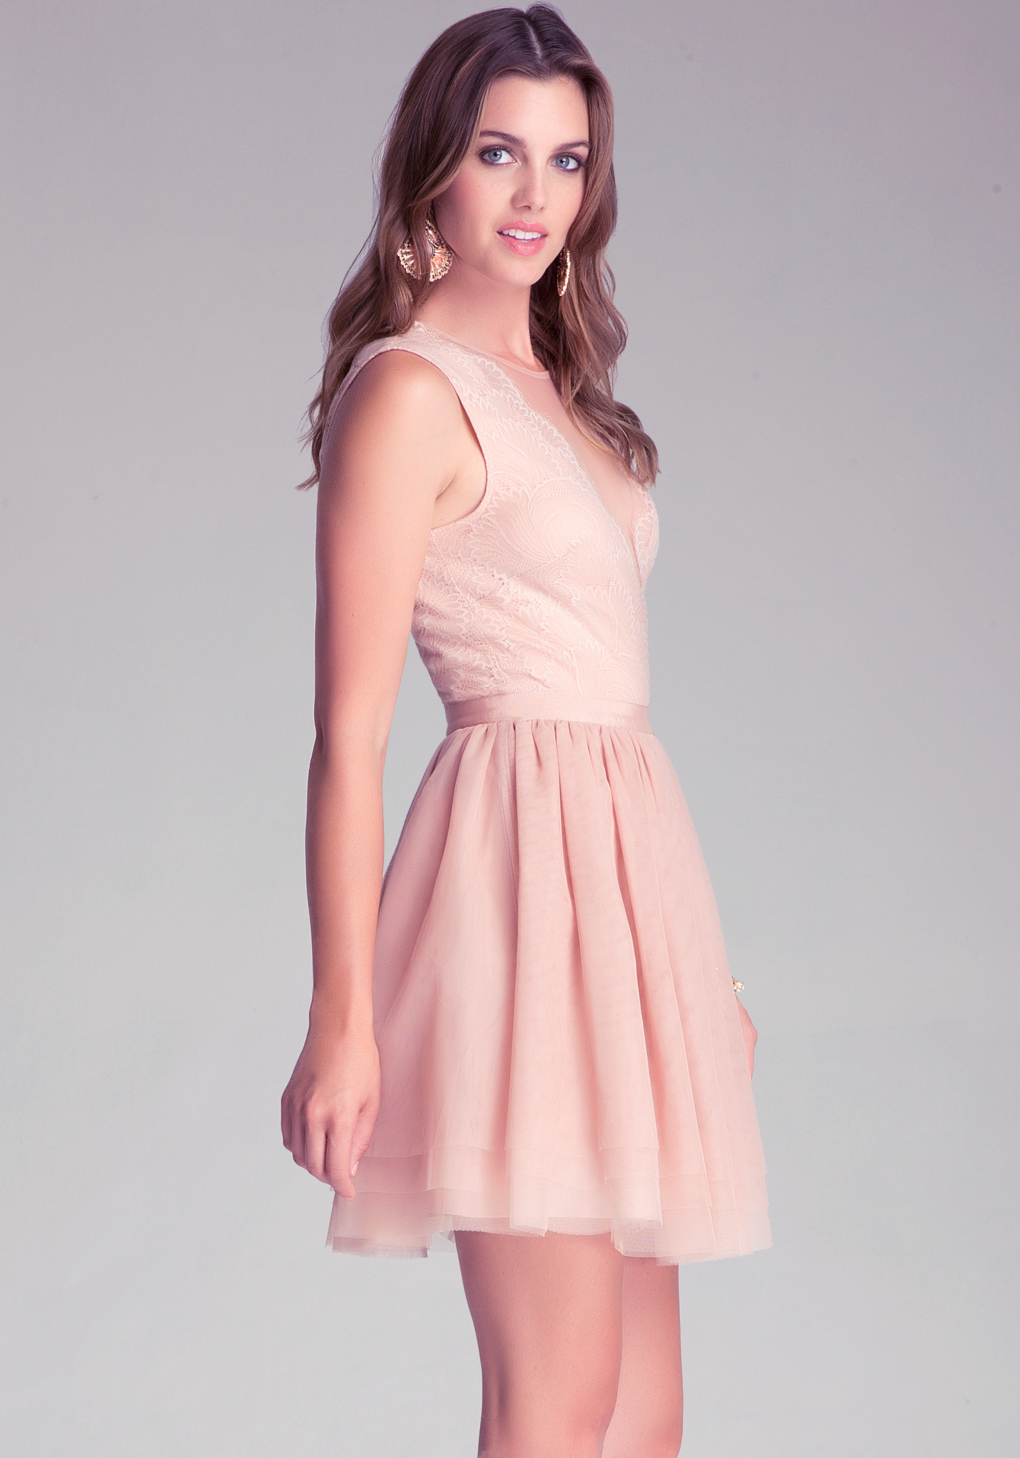 Lyst - Bebe Flare Puff Skirt Dress in Pink